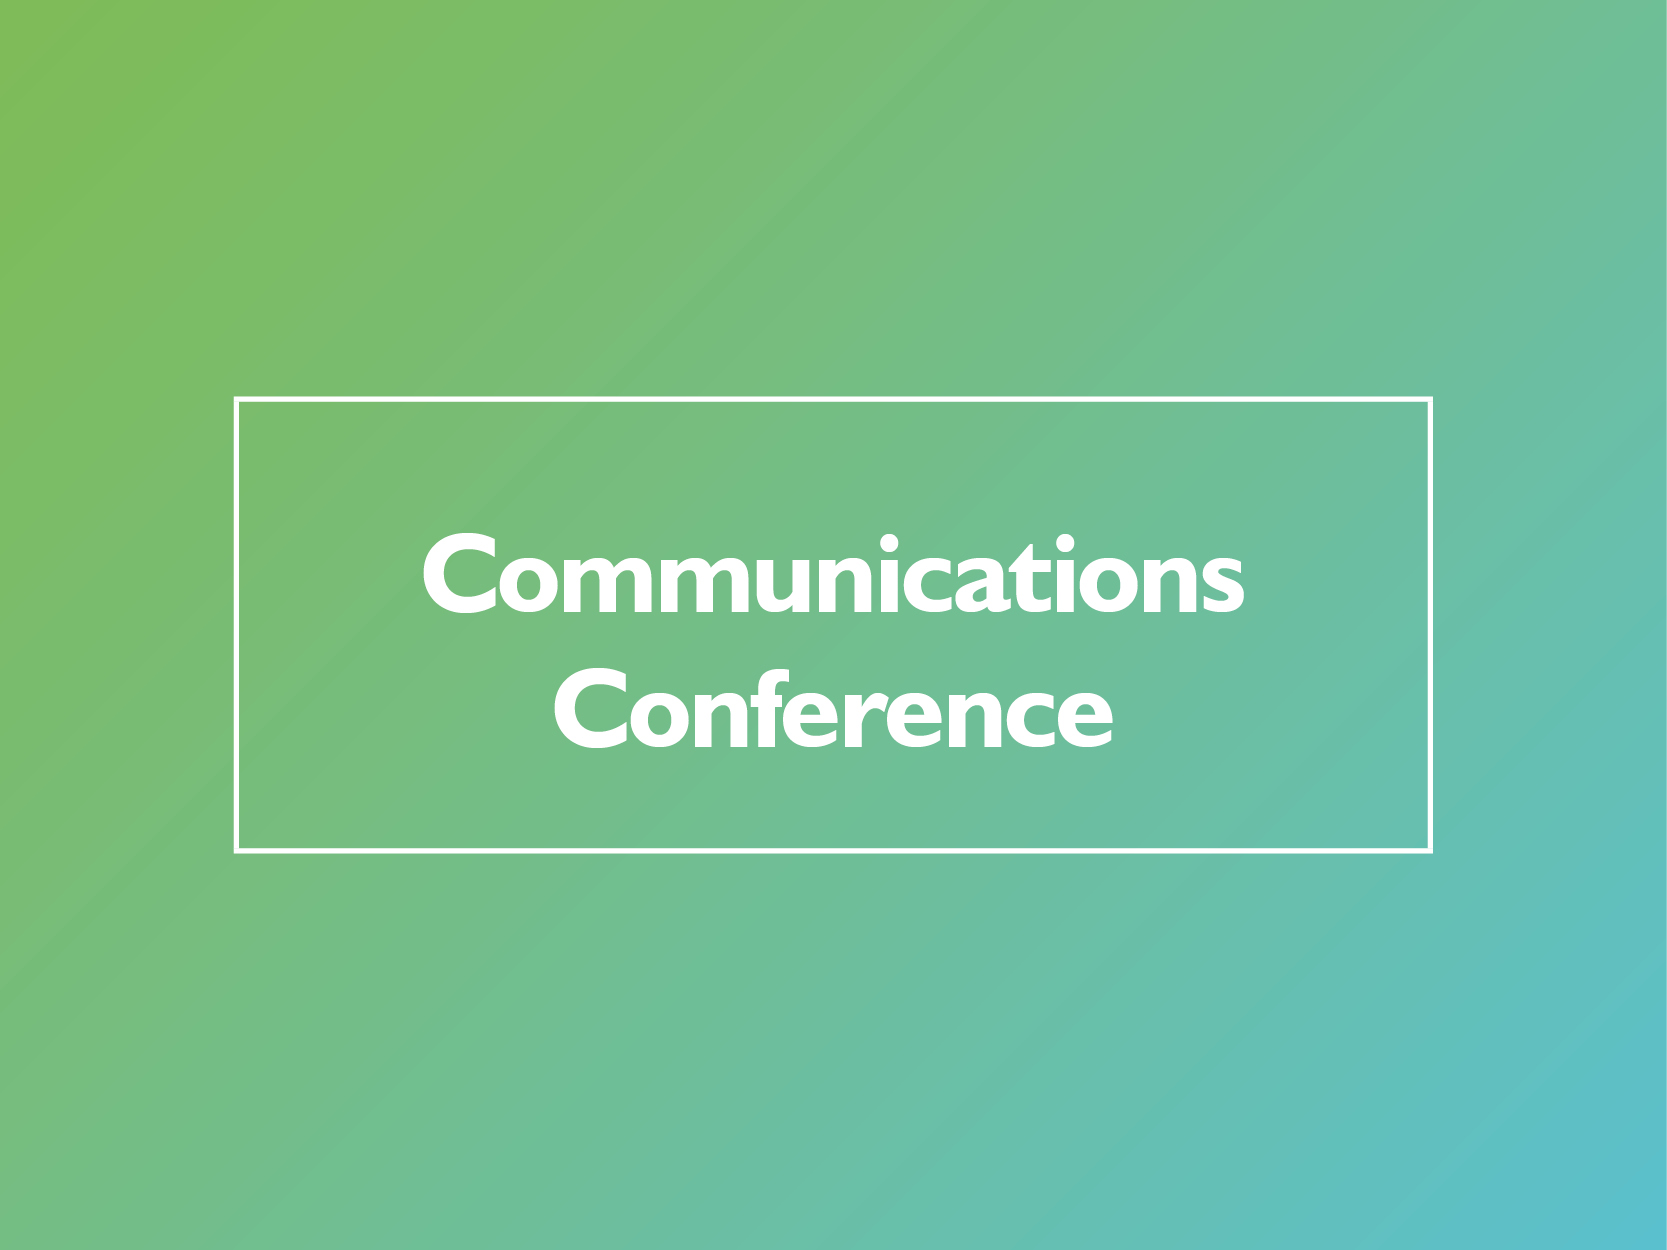 SFHA Communications Conference: save the date  image